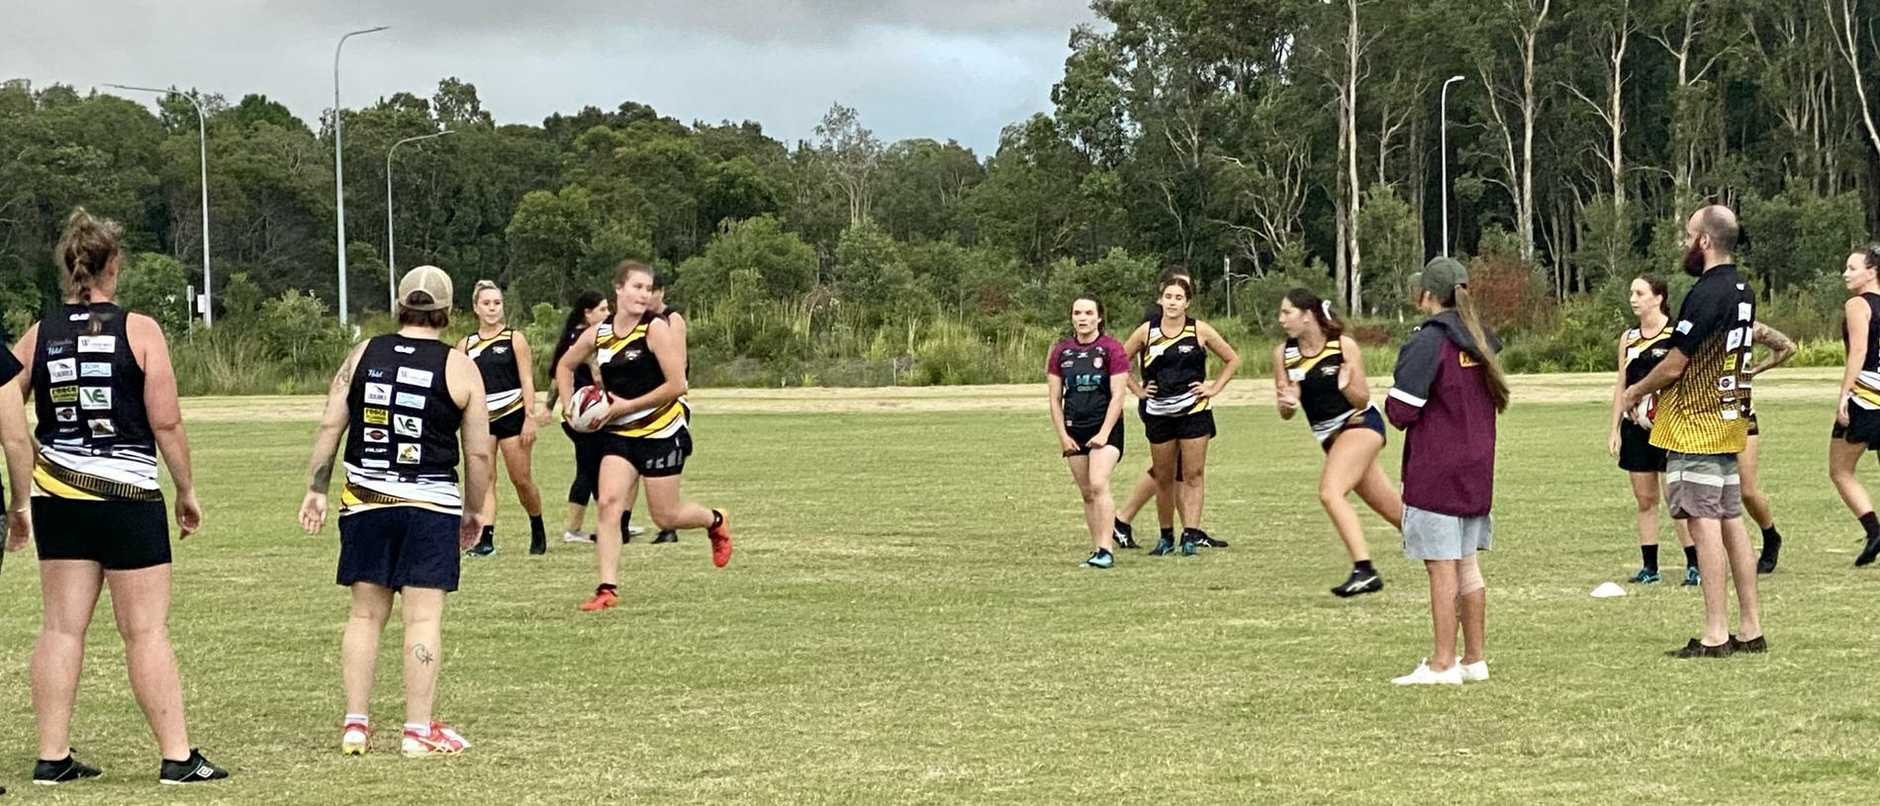 Caloundra Sharks women's rugby league team hit the pitch ahead of their first game in the Sunshine Coast rugby league competition.